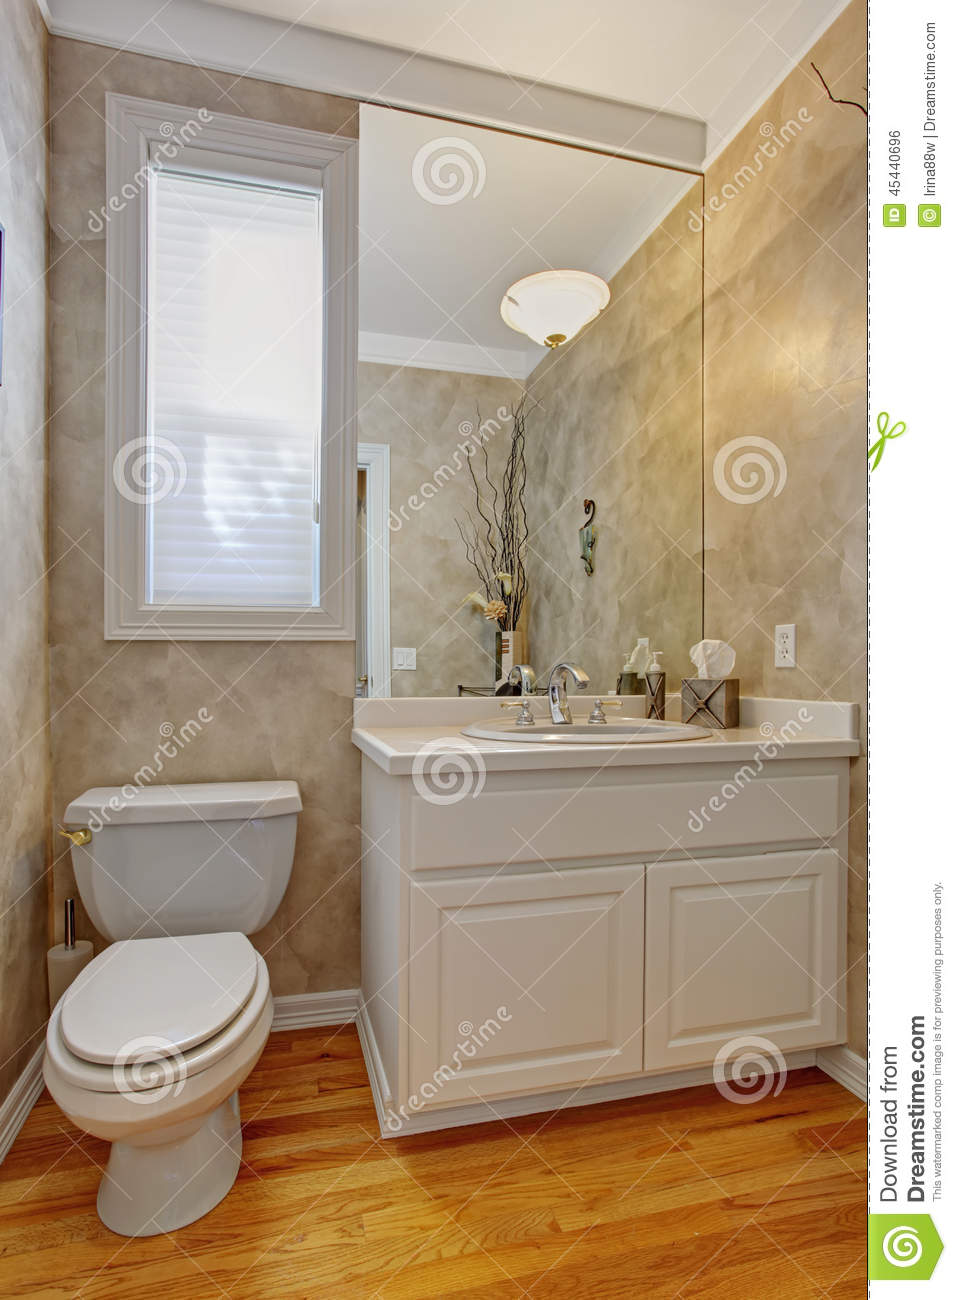 Restroom With White Vanity Cabinet Stock Photo - Image: 45440696